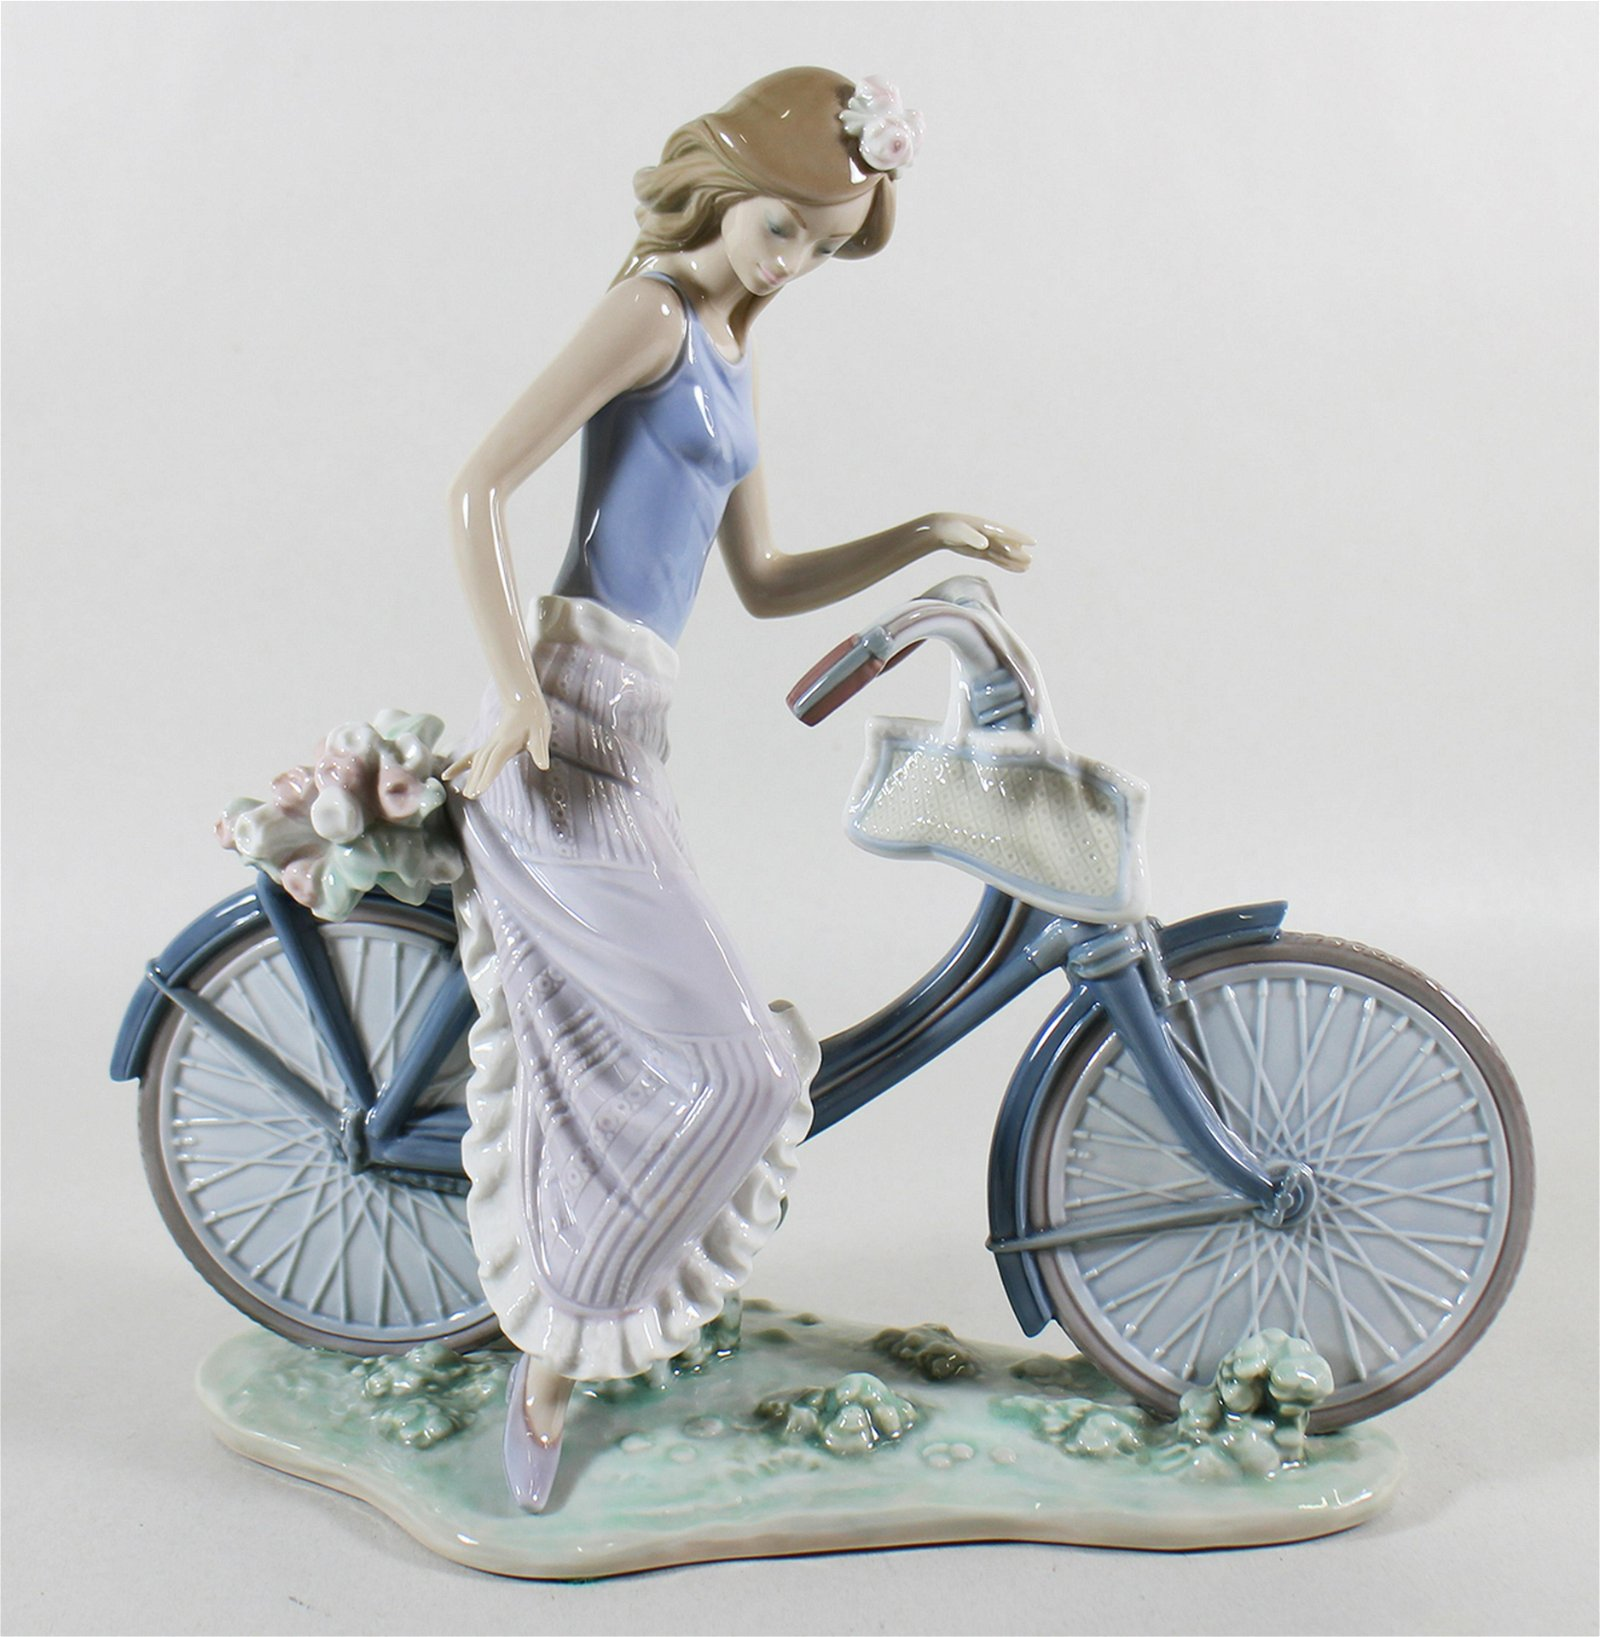 LLADRO GIRL BIKING IN THE COUNTRY FIGURINE